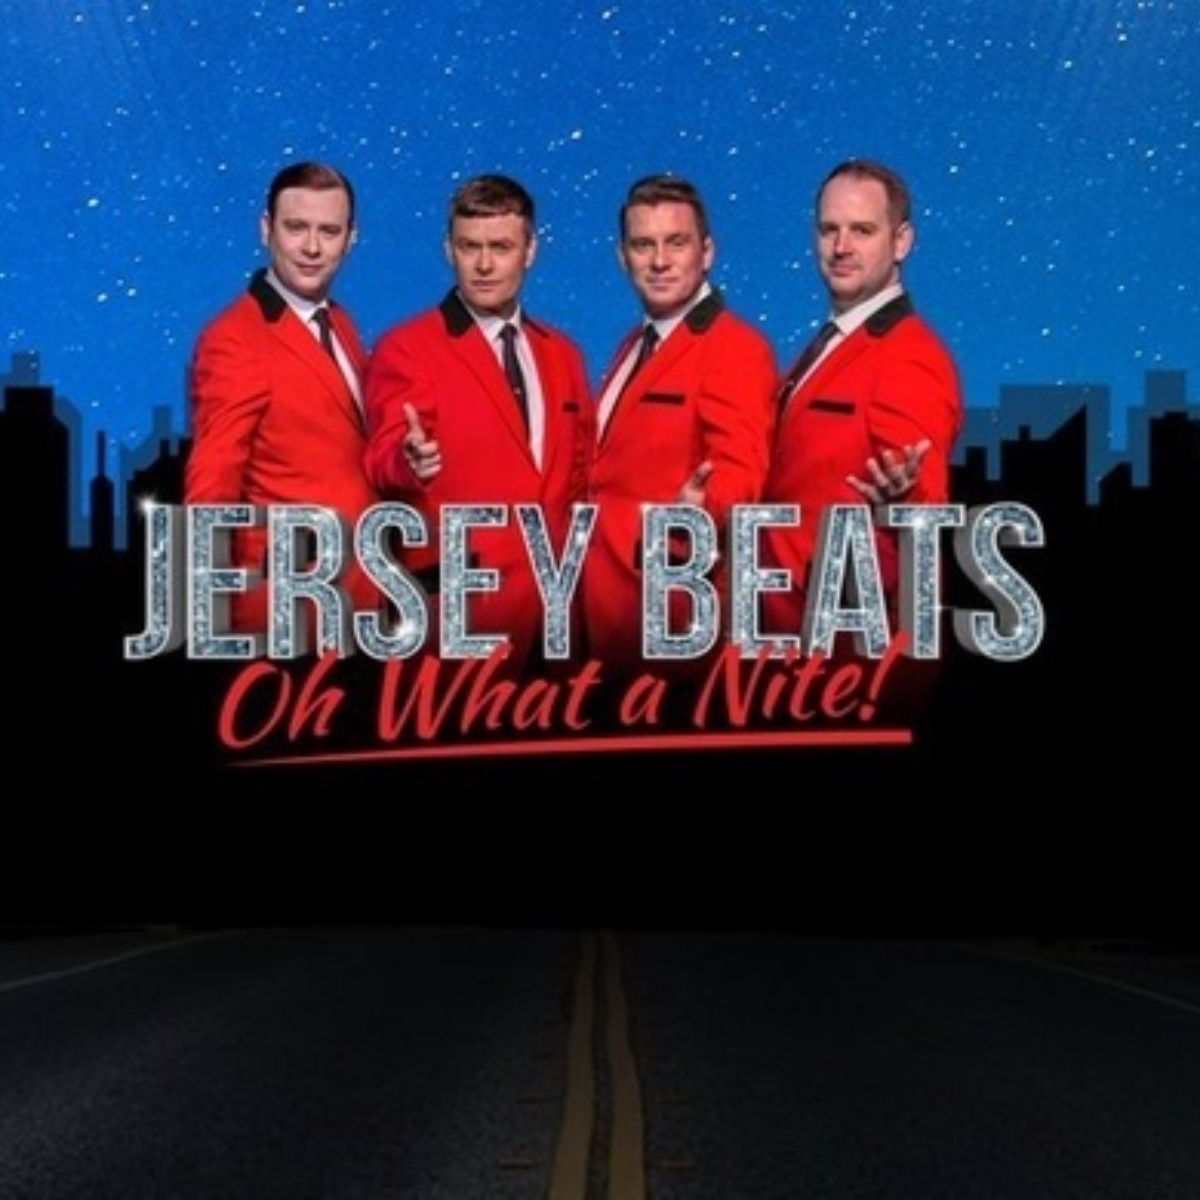 Jersey Boys Images